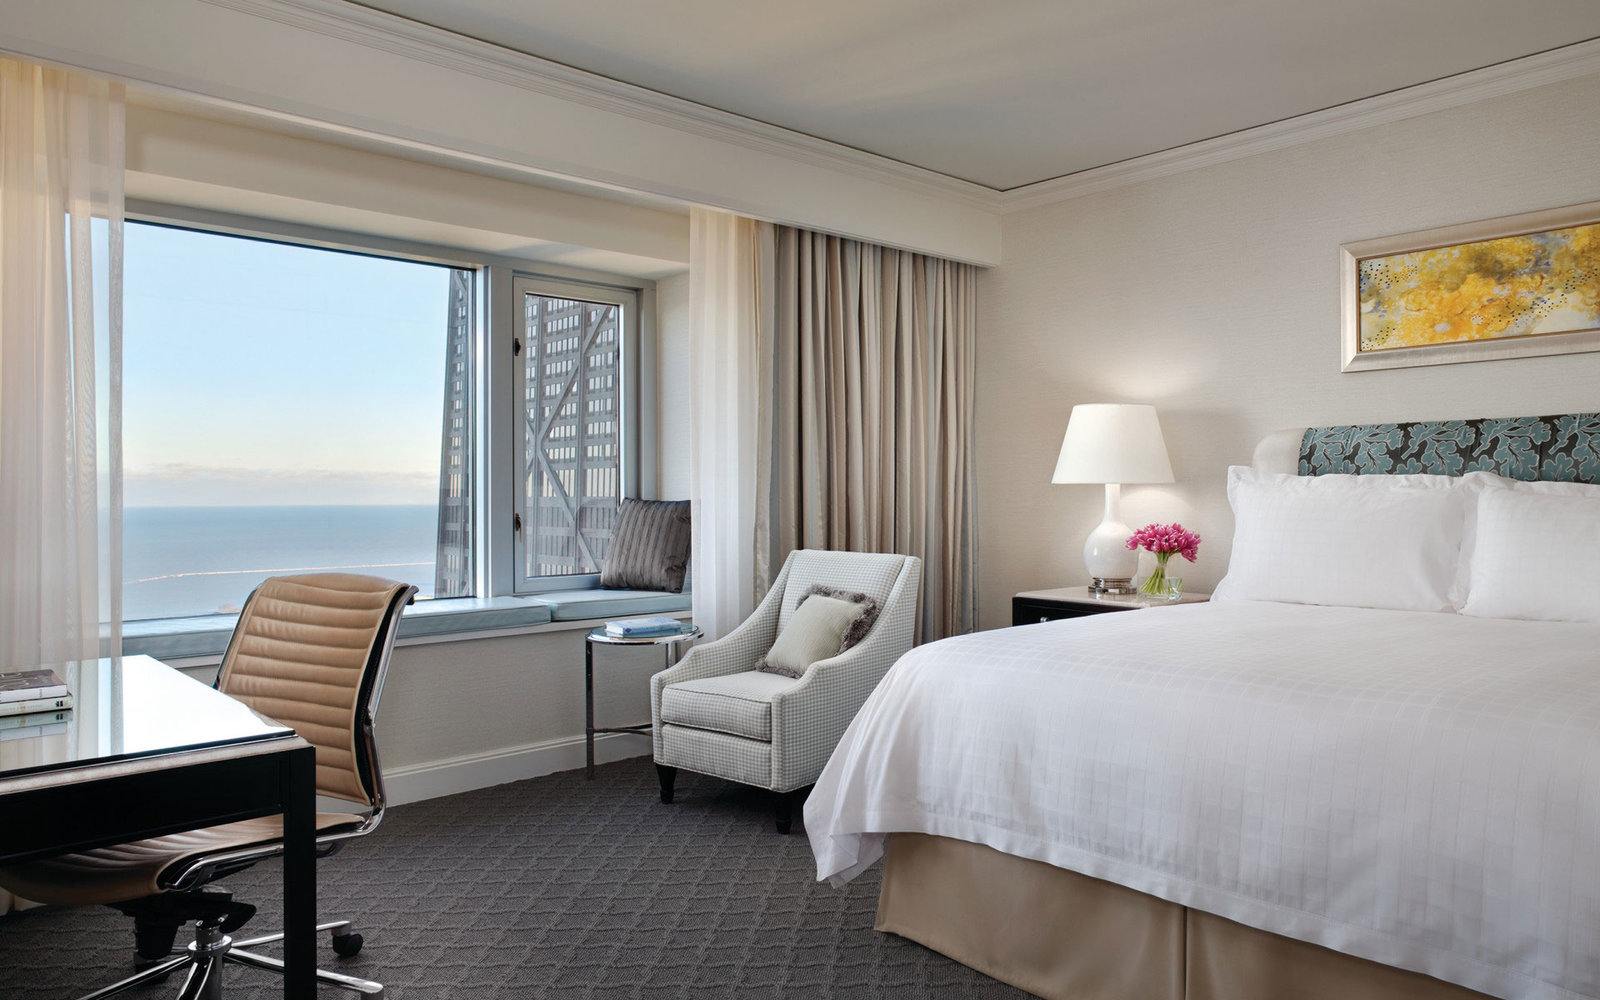 Illinois: Four Seasons Hotel Chicago